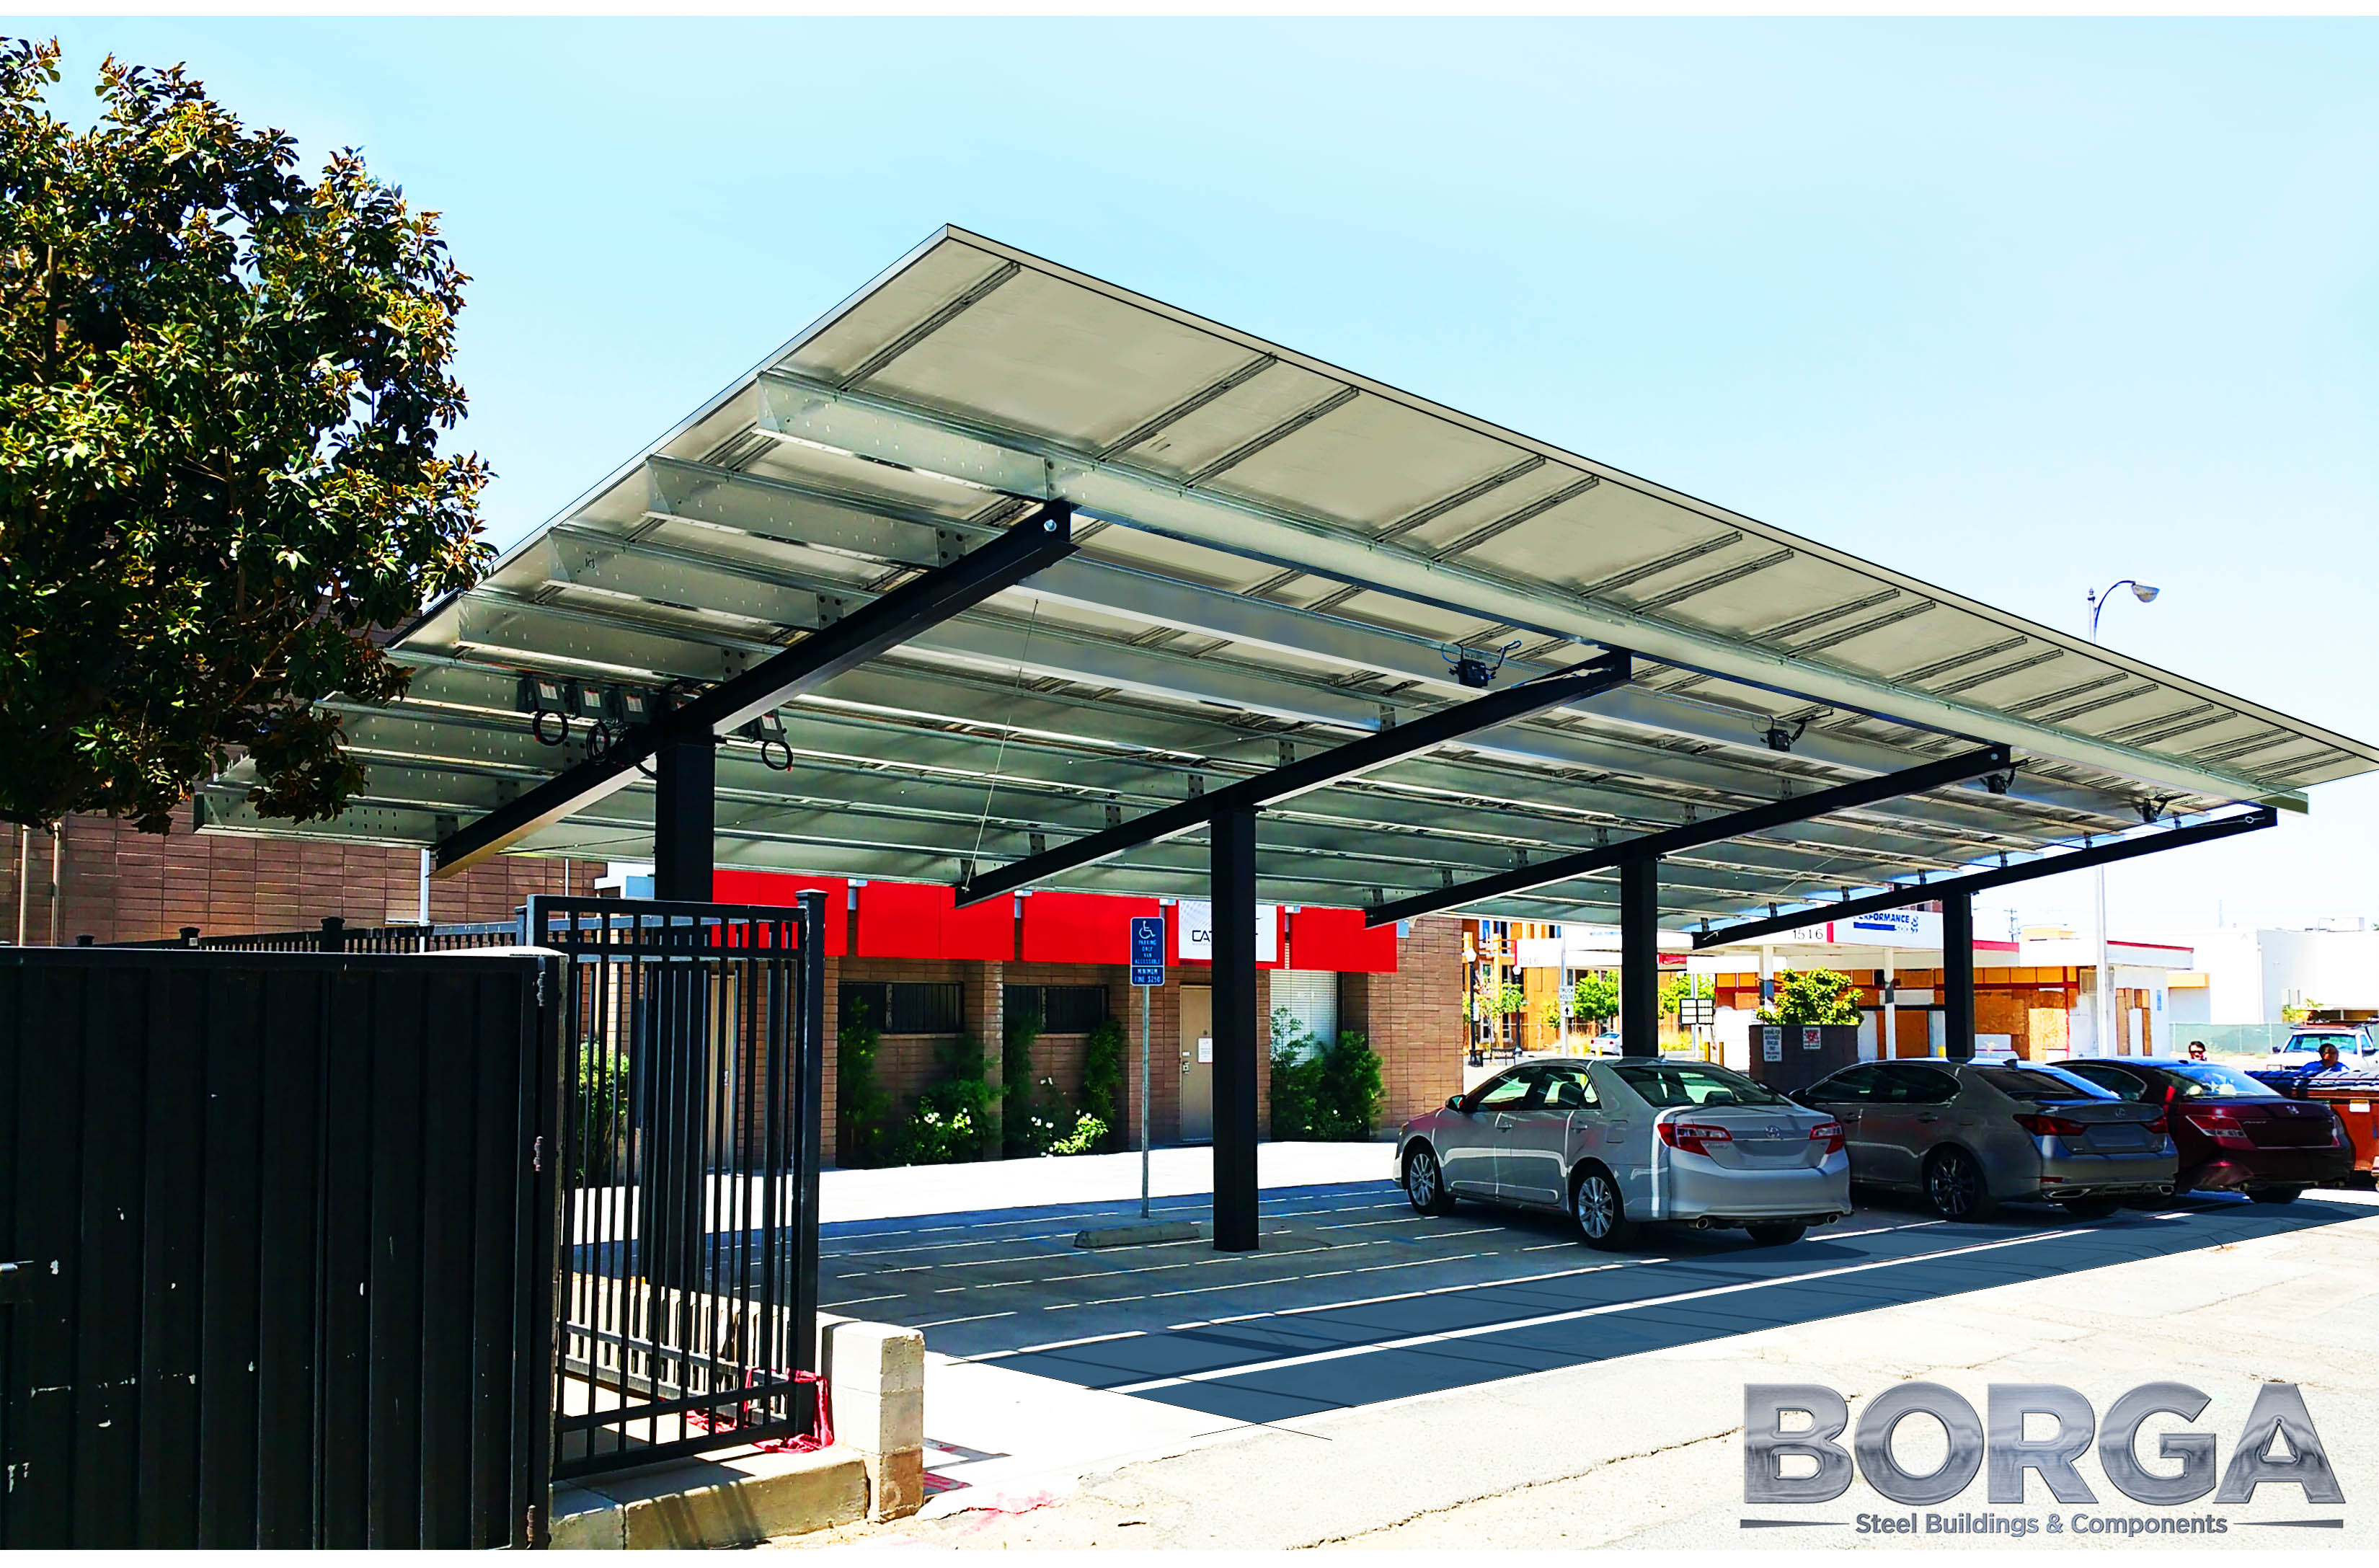 borga steel buildings components fresno california ca solar carport cover energy